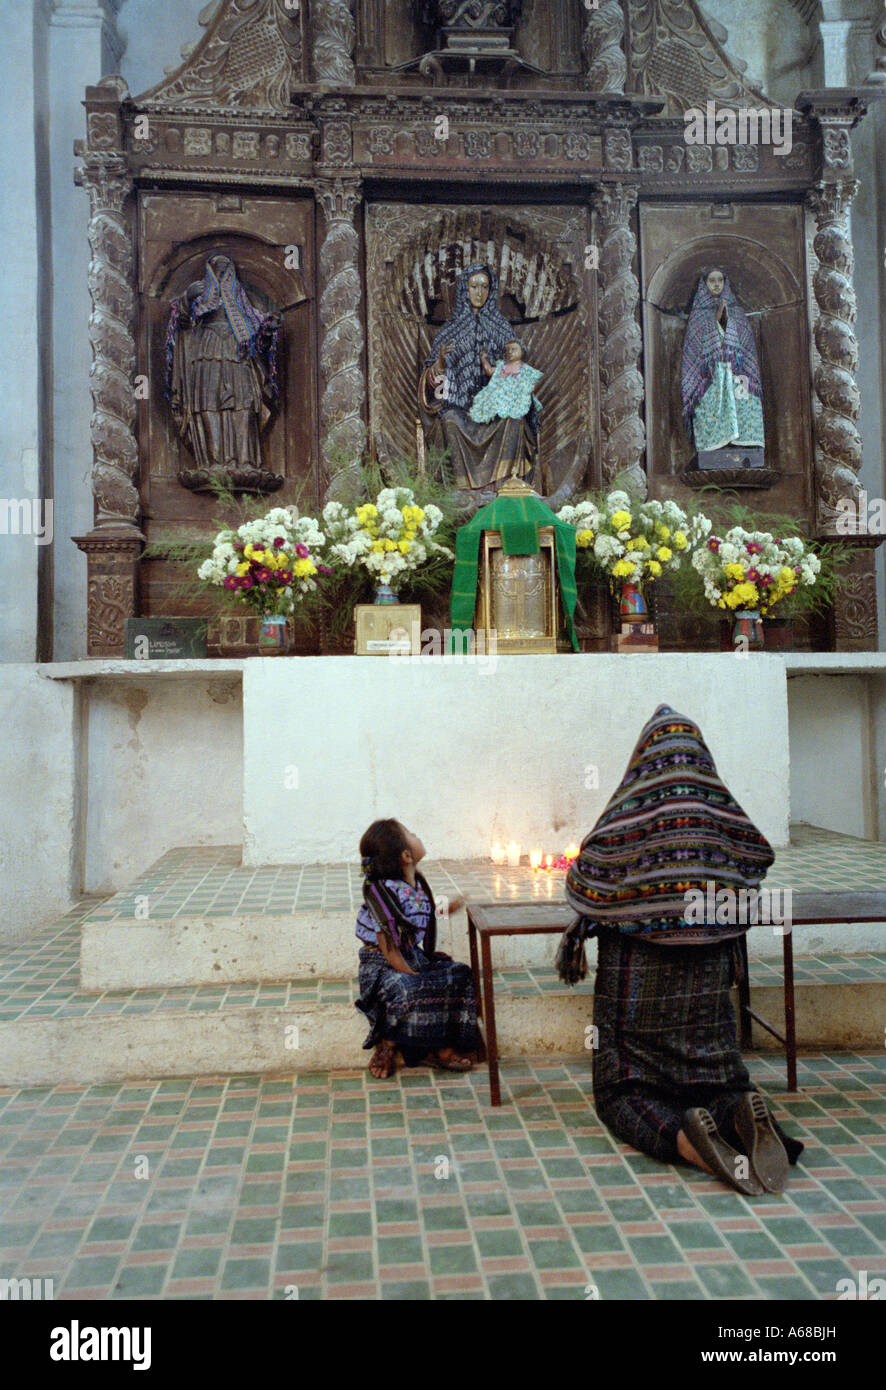 Woman & Child, Praying inside a chuch, Santiago, Atitlan, Guatemala. - Stock Image